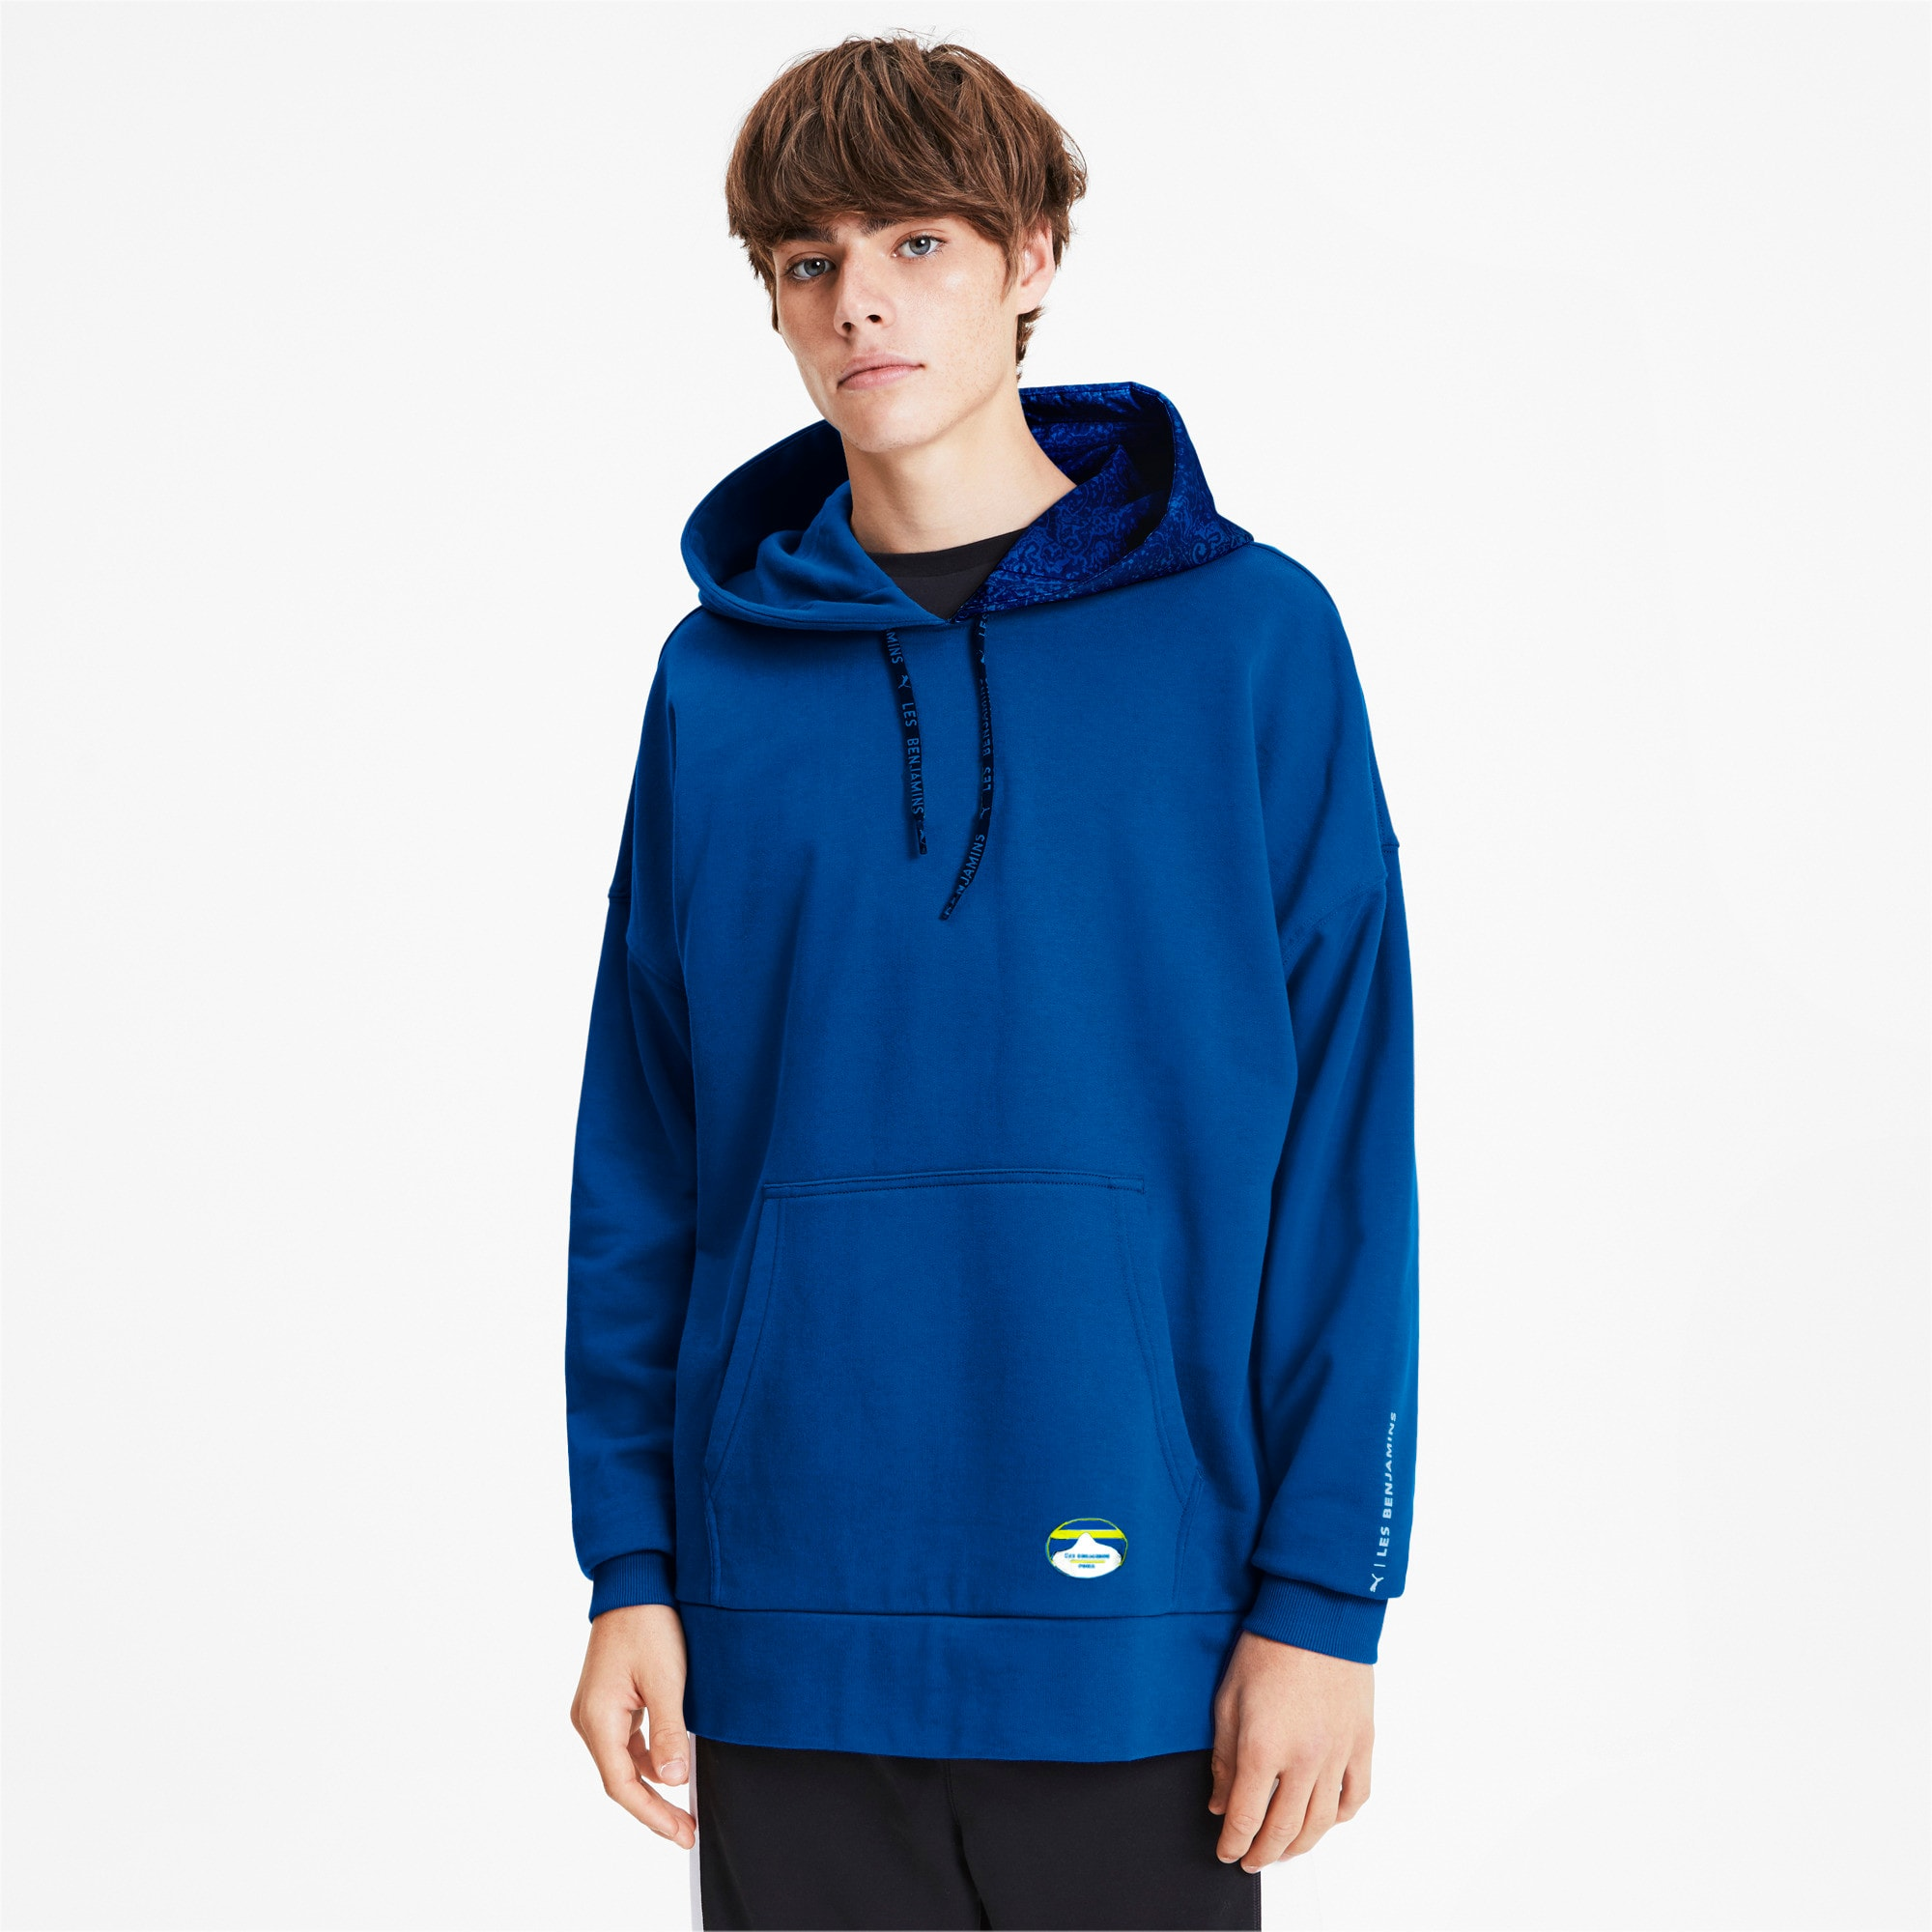 Thumbnail 2 of PUMA x LES BENJAMINS Men's Hoodie, Galaxy Blue, medium